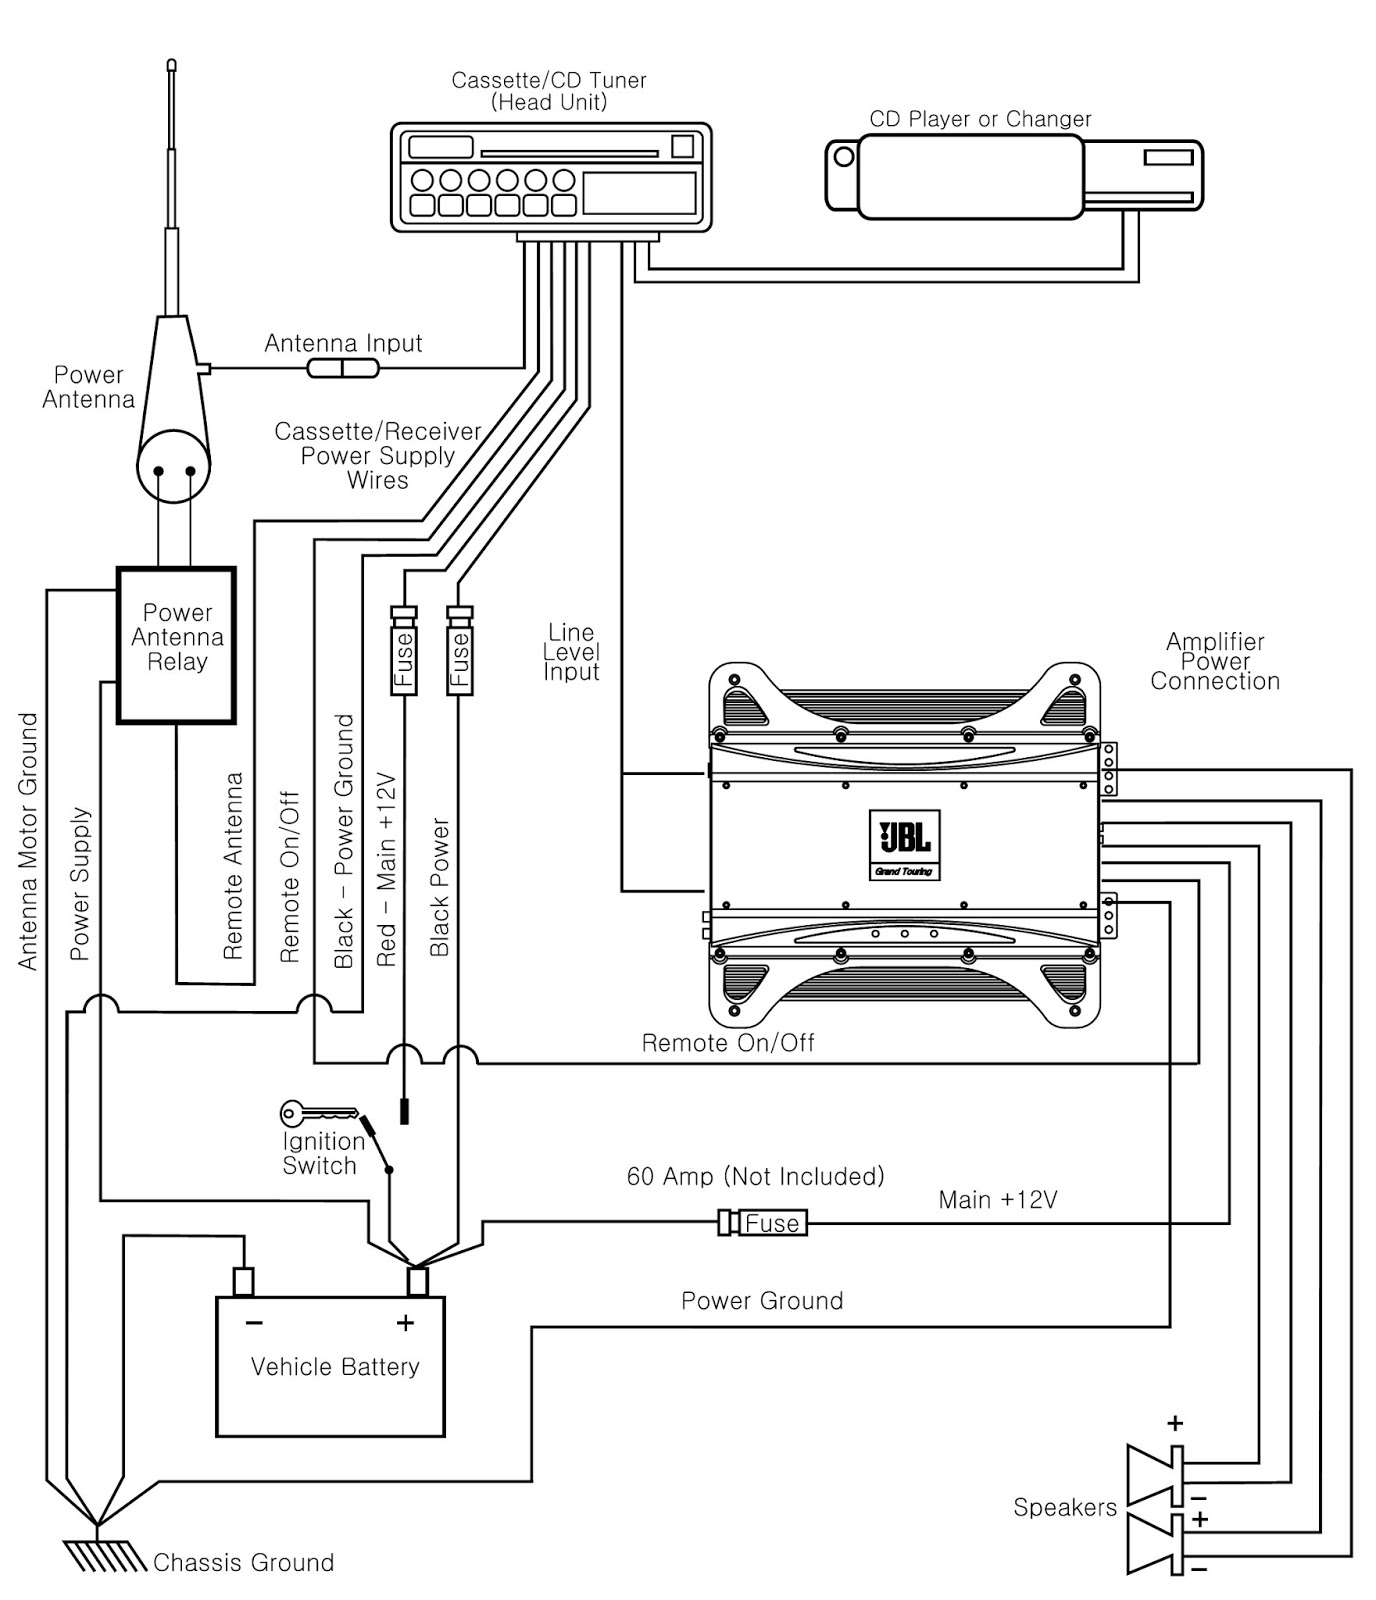 wiring diagram kenwood amp wiring image wiring diagram kenwood dnx9980hd wiring diagram kenwood auto wiring diagram on wiring diagram kenwood amp